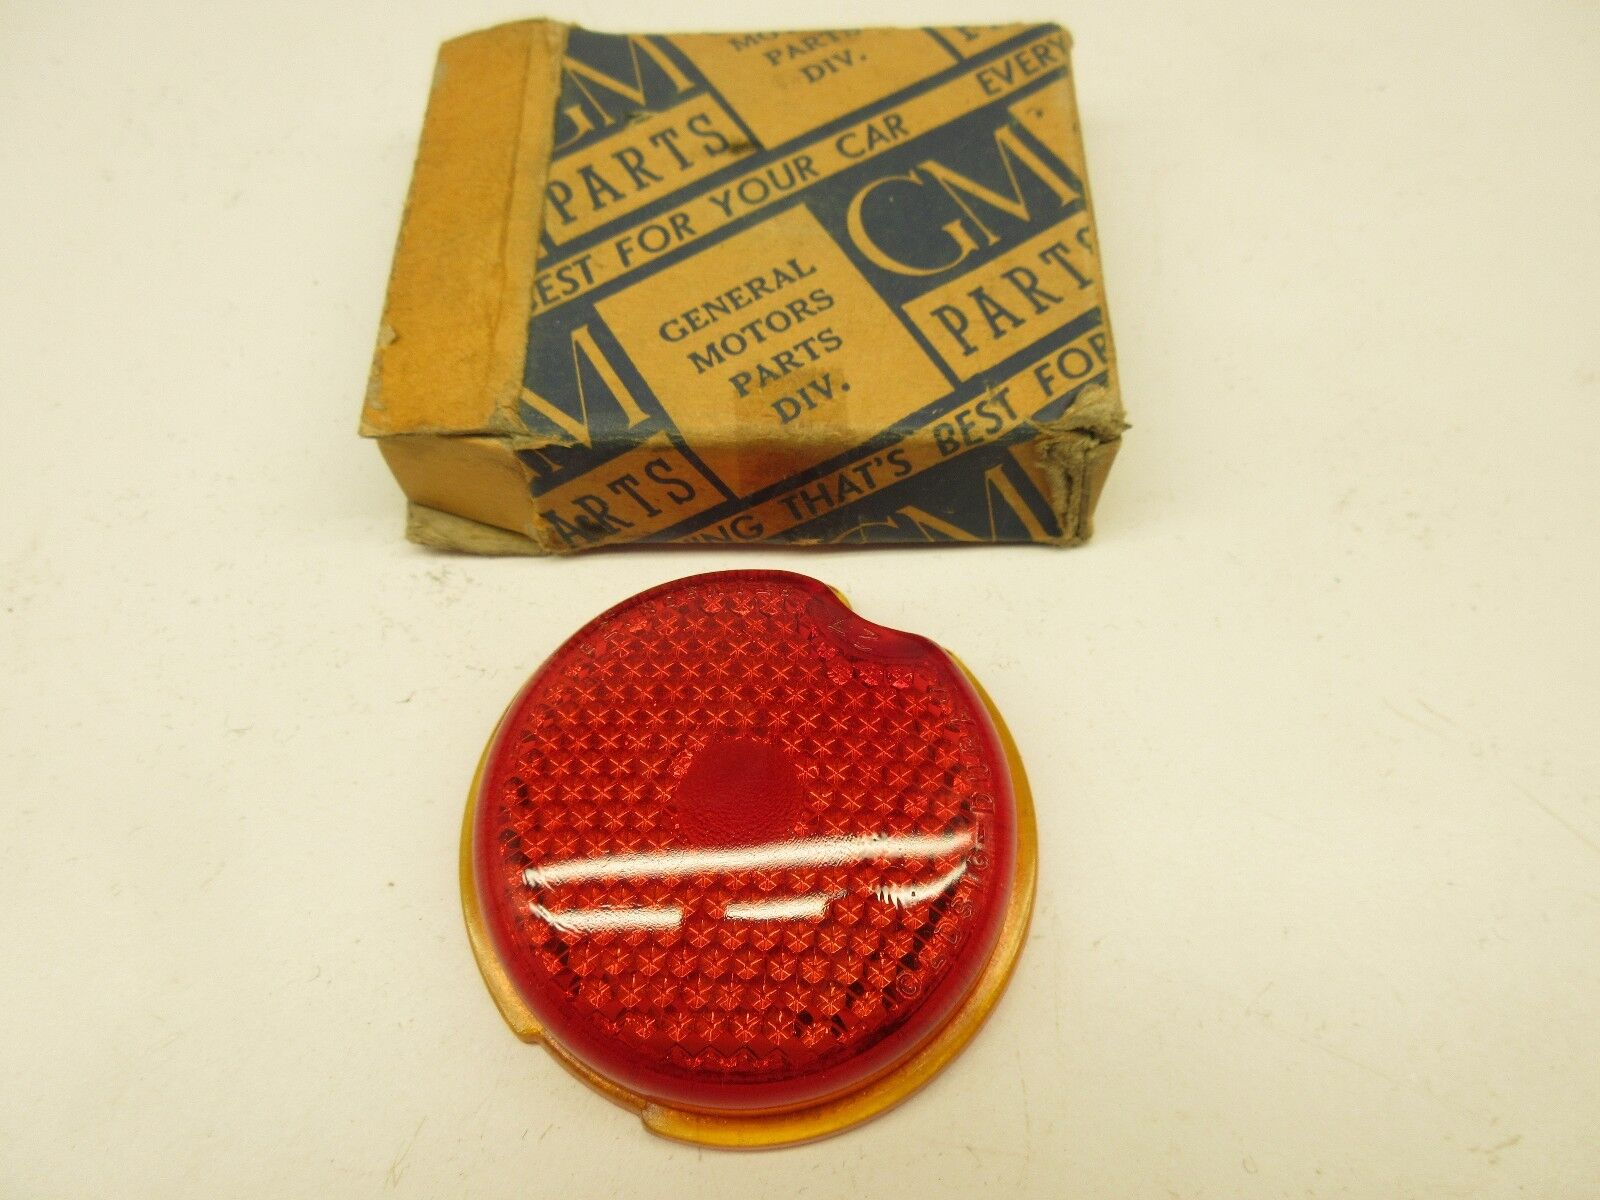 NOS 1939 Chevy 1940 1941 1946 1947 1948 Sedan Delivery Tail Light Lens 920696